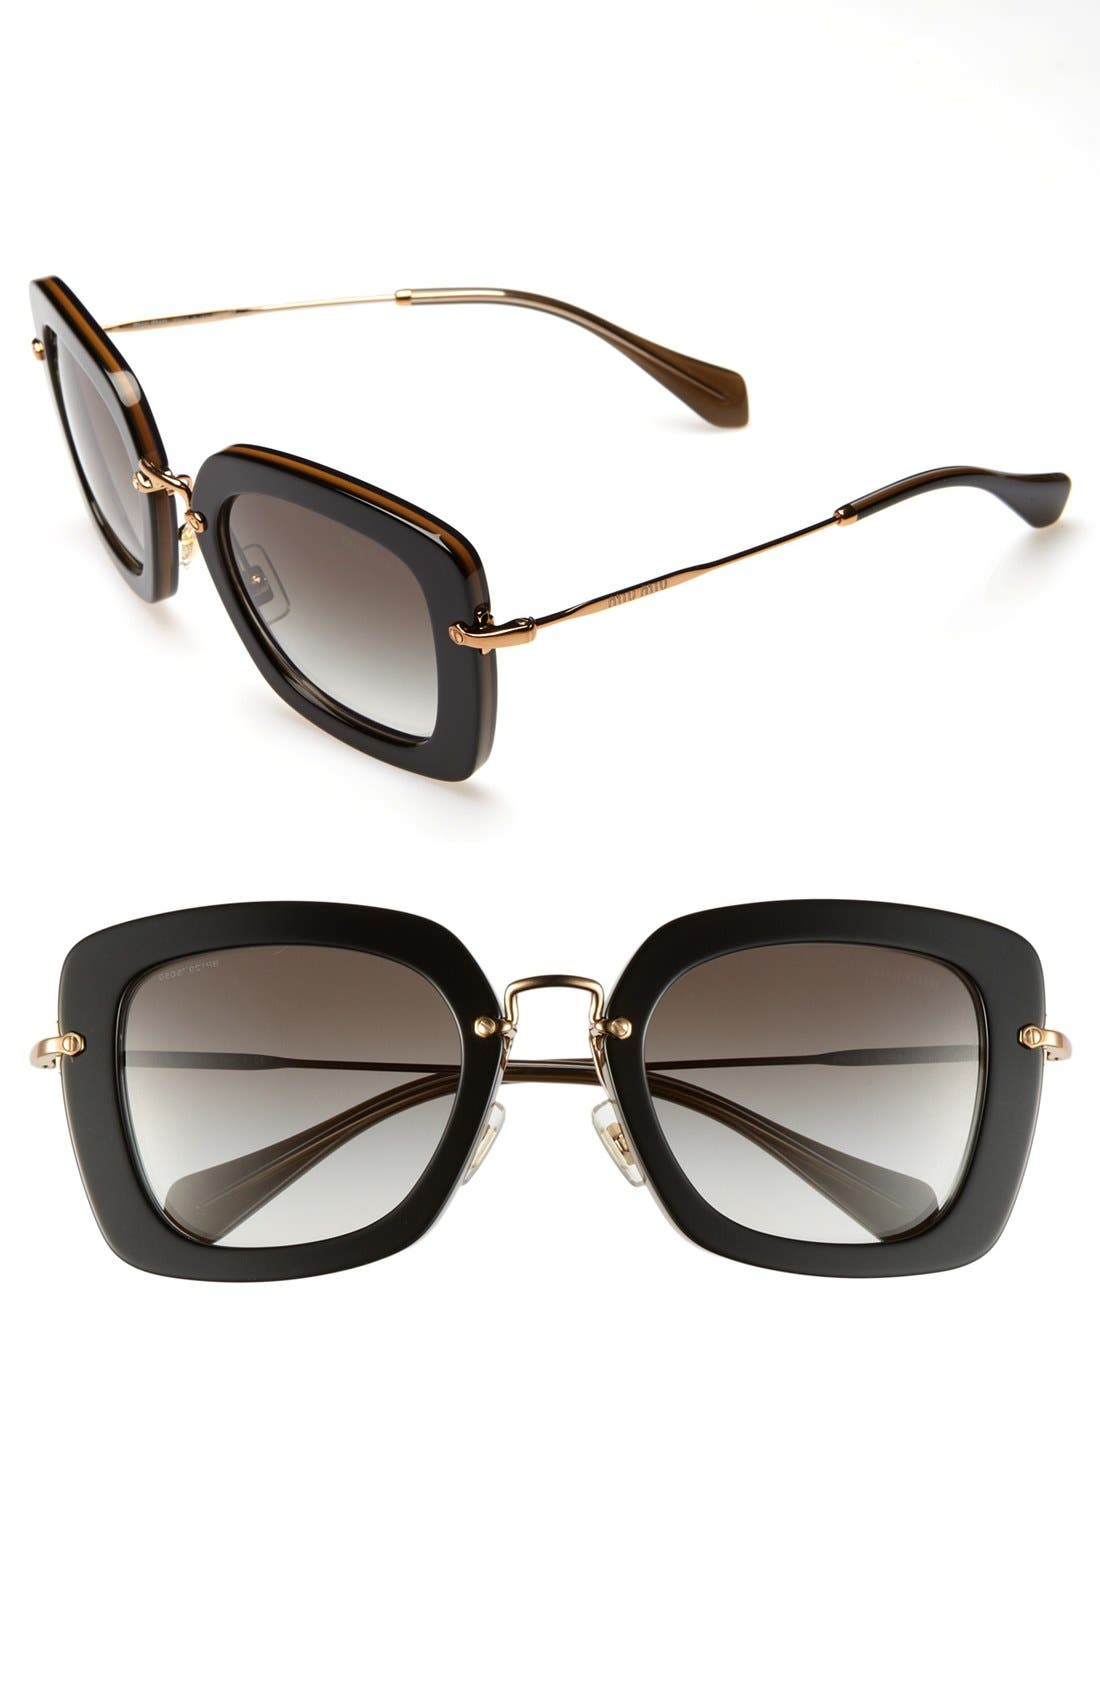 Miu Miu 52mm Retro Sunglasses